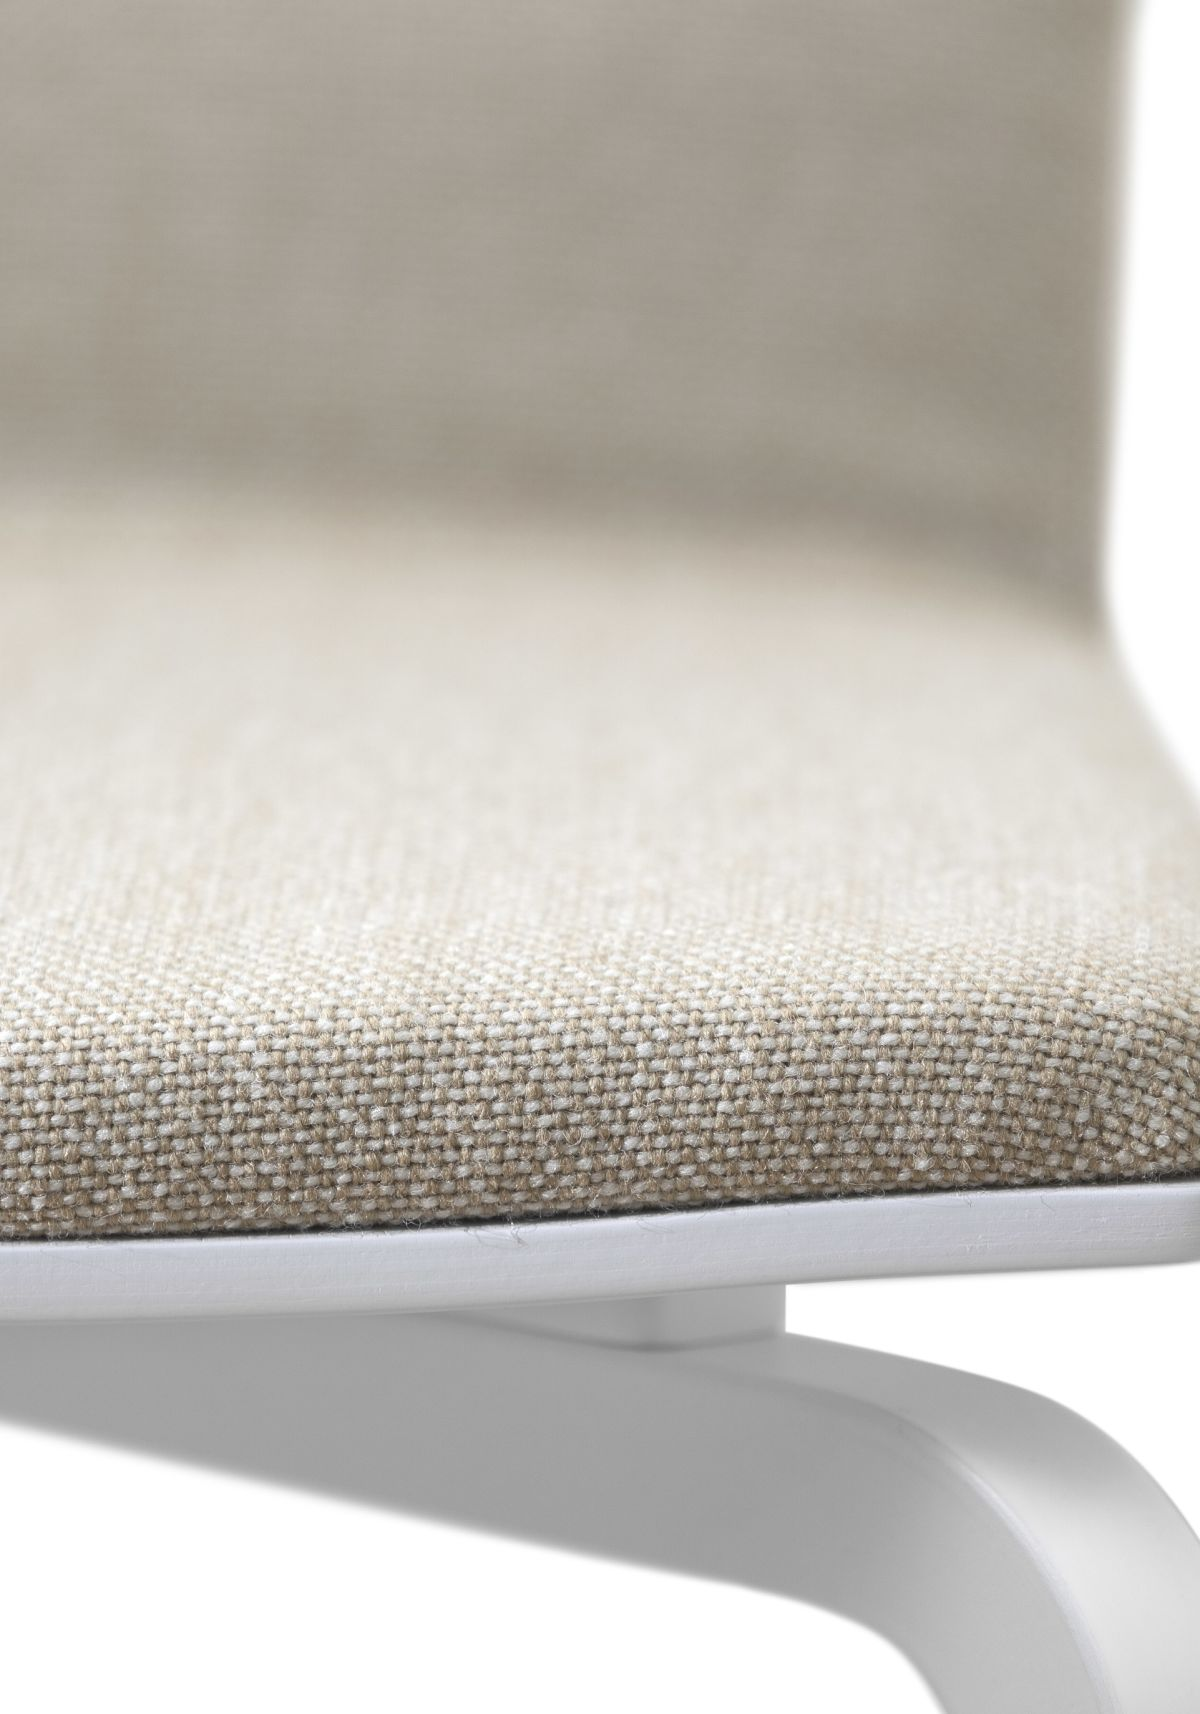 Lounge-Chair-Hk002-White-Lacquer-Upholstered